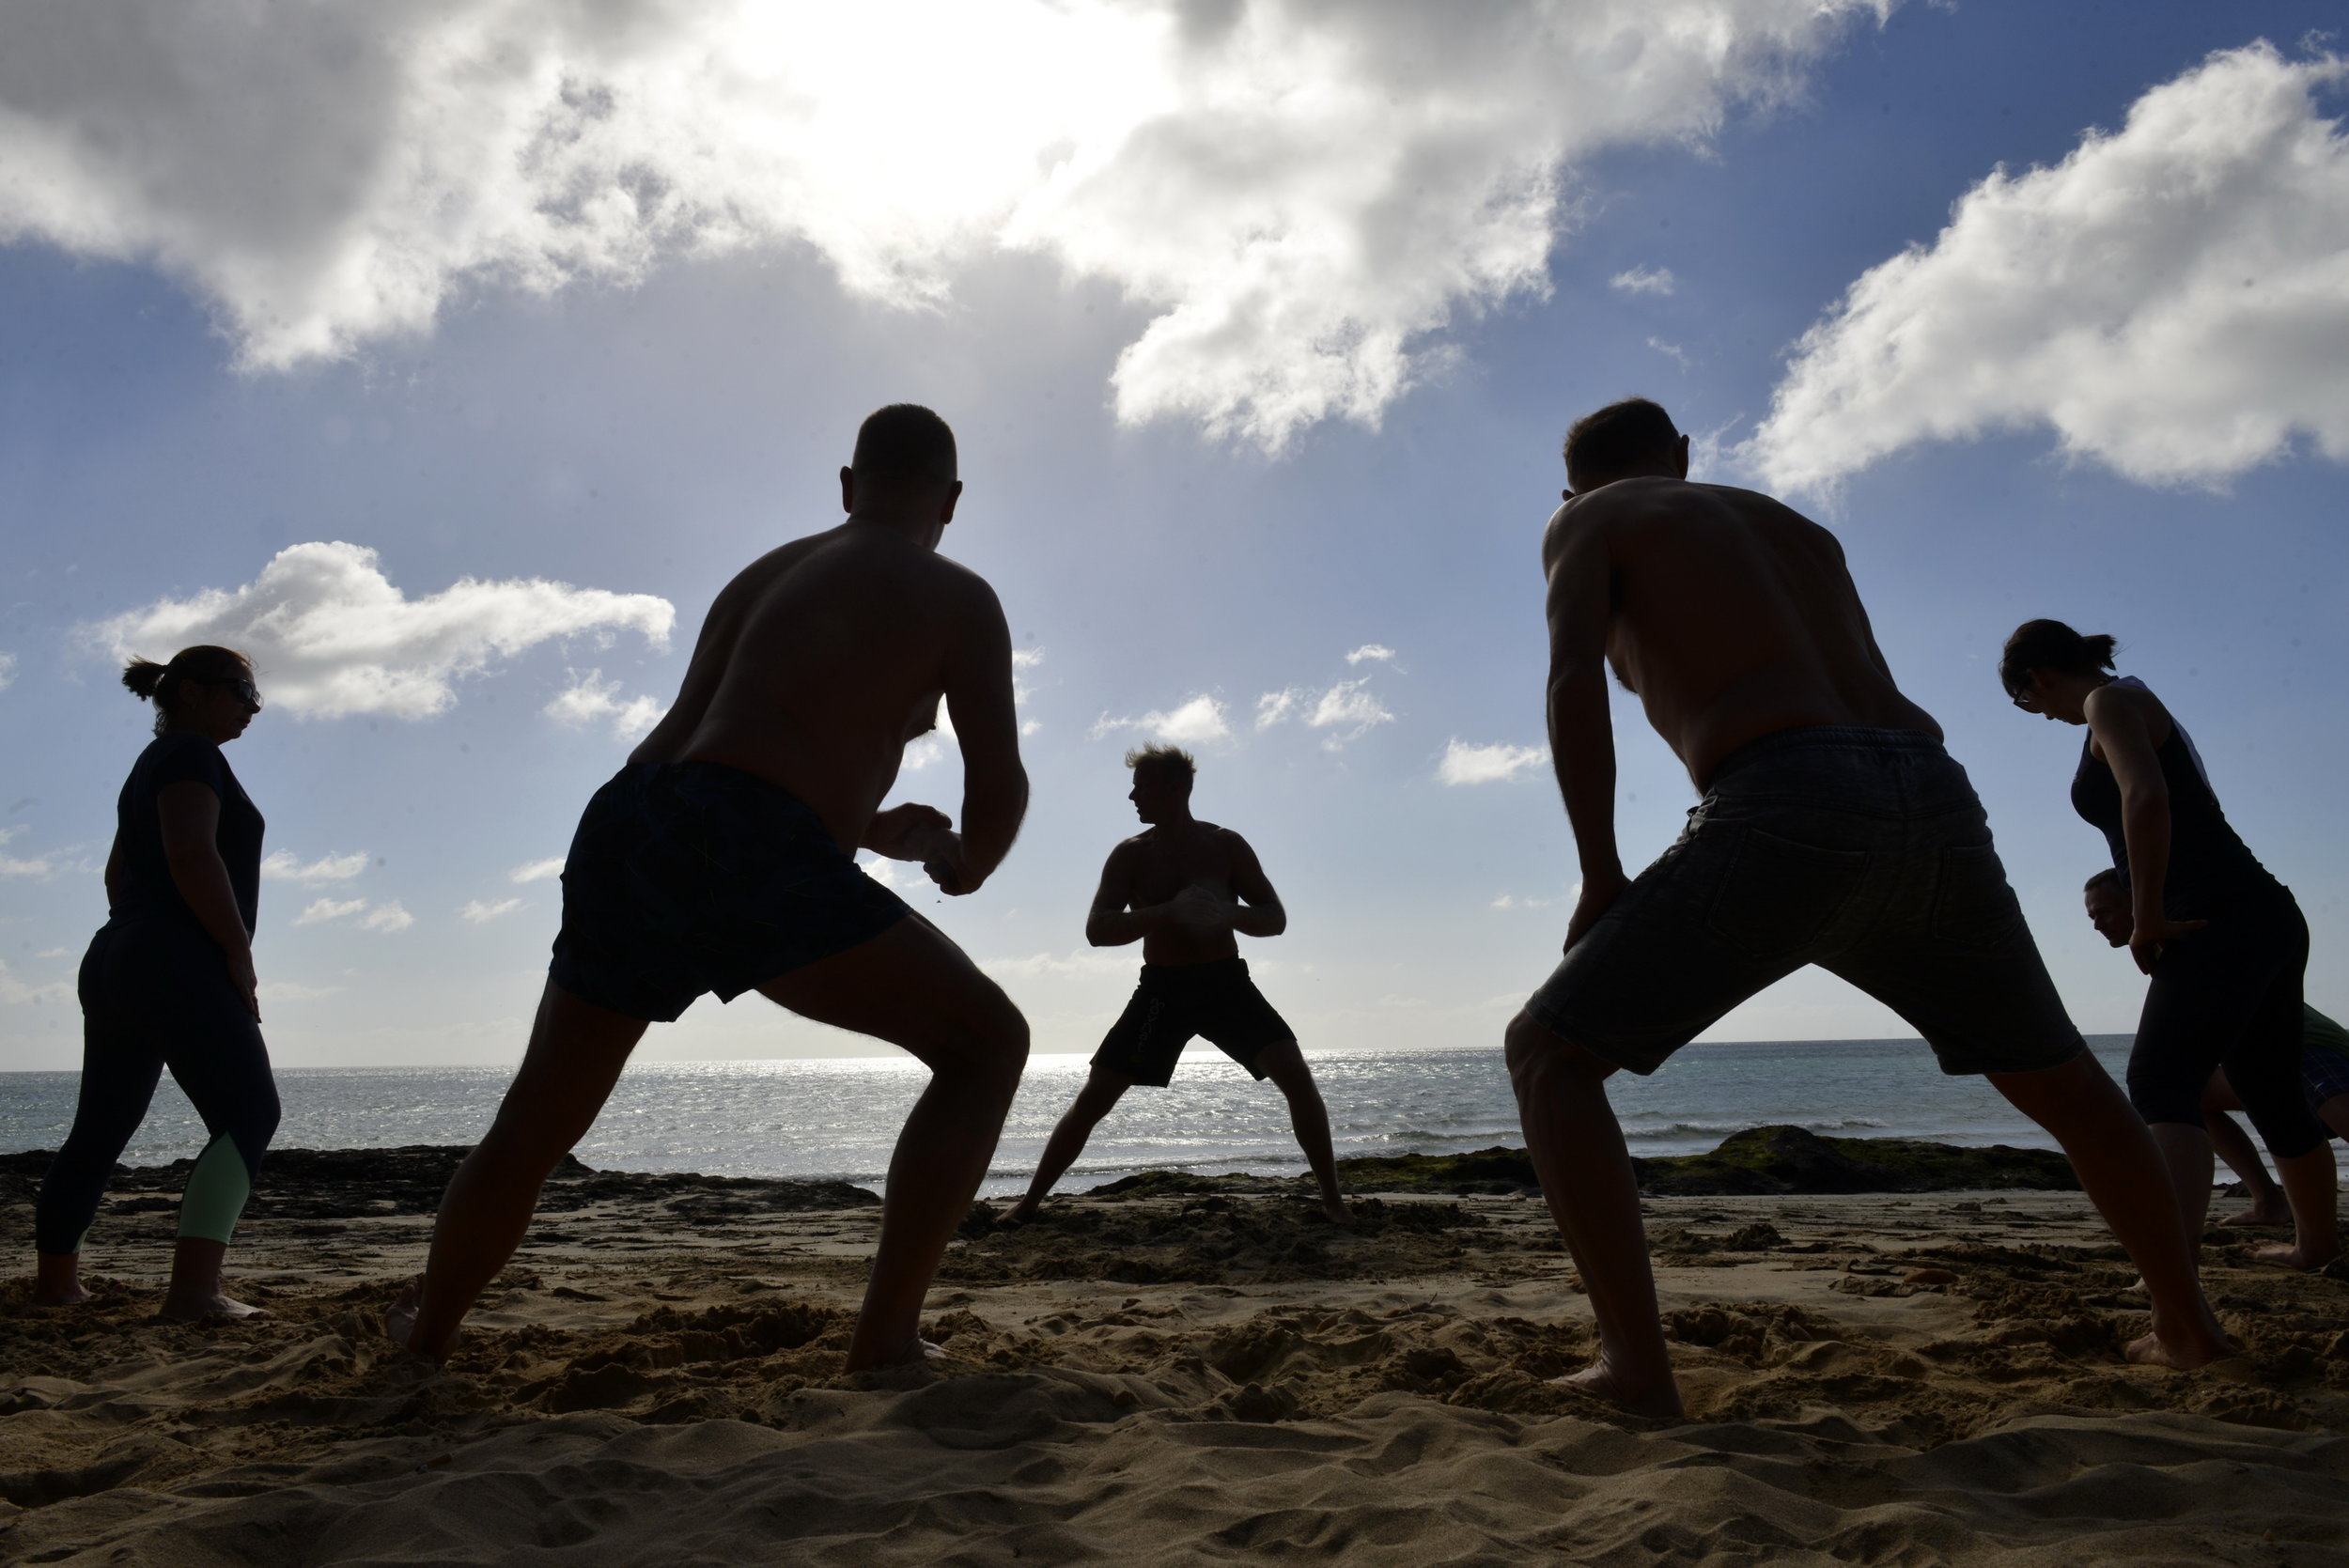 What does a Sunny Fitness training look like? - We practice walking, running, balancing, jumping, crawling, climbing, swimming, lifting, carrying, throwing, catching, self-defense, cooperative work, gymnastics, bodyweight strenght exercises, and their progressions, combinations.Safe, step-by-step progressions for all ages, abilities, and fitness levels!Special attention on ground movement for restoring stability and mobility. Screening your weaknesses and improving your movement skills and quality.I prefer training outside in a safe natural environment to get the benefits of sunlight, grounding and fresh air.I think (based on the latest science) the No.1 problems for modern people are that they lack the sunlight and nature, eating a bad diet, they are sitting and spending too much time indside front of the screens and under artificial lights... And we don't use fully our body's amazing movement capacity!In my trainings you get all the benefits of the sport and connecting to nature!I will help you to build a naturally strong and flexible body and to form yourself into a mindful, skillful, and physically capable human being!